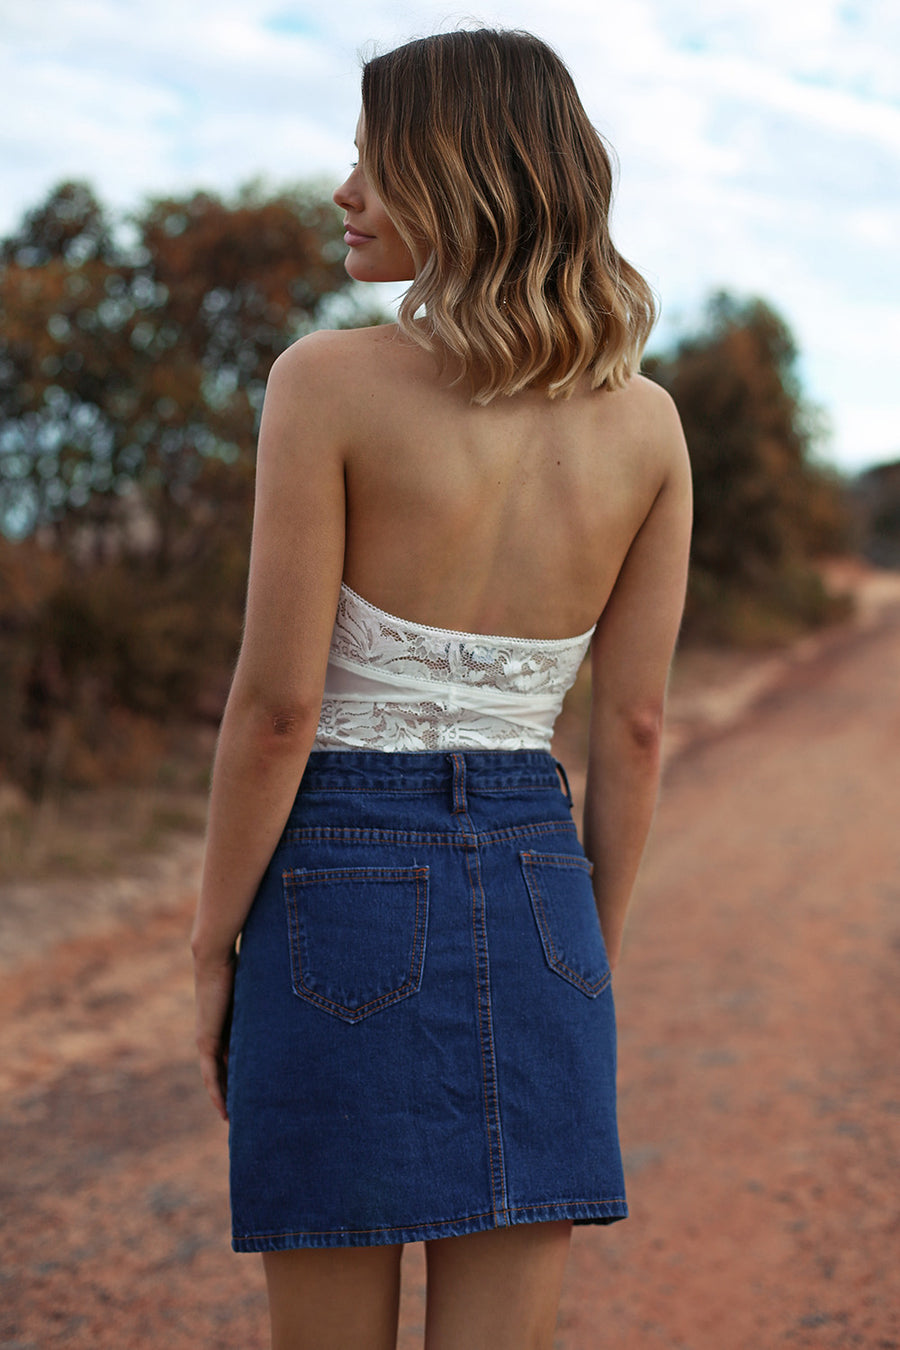 The Cure Skirt in Dark Denim - HER Empire Fashion Boutique Terrigal & Online